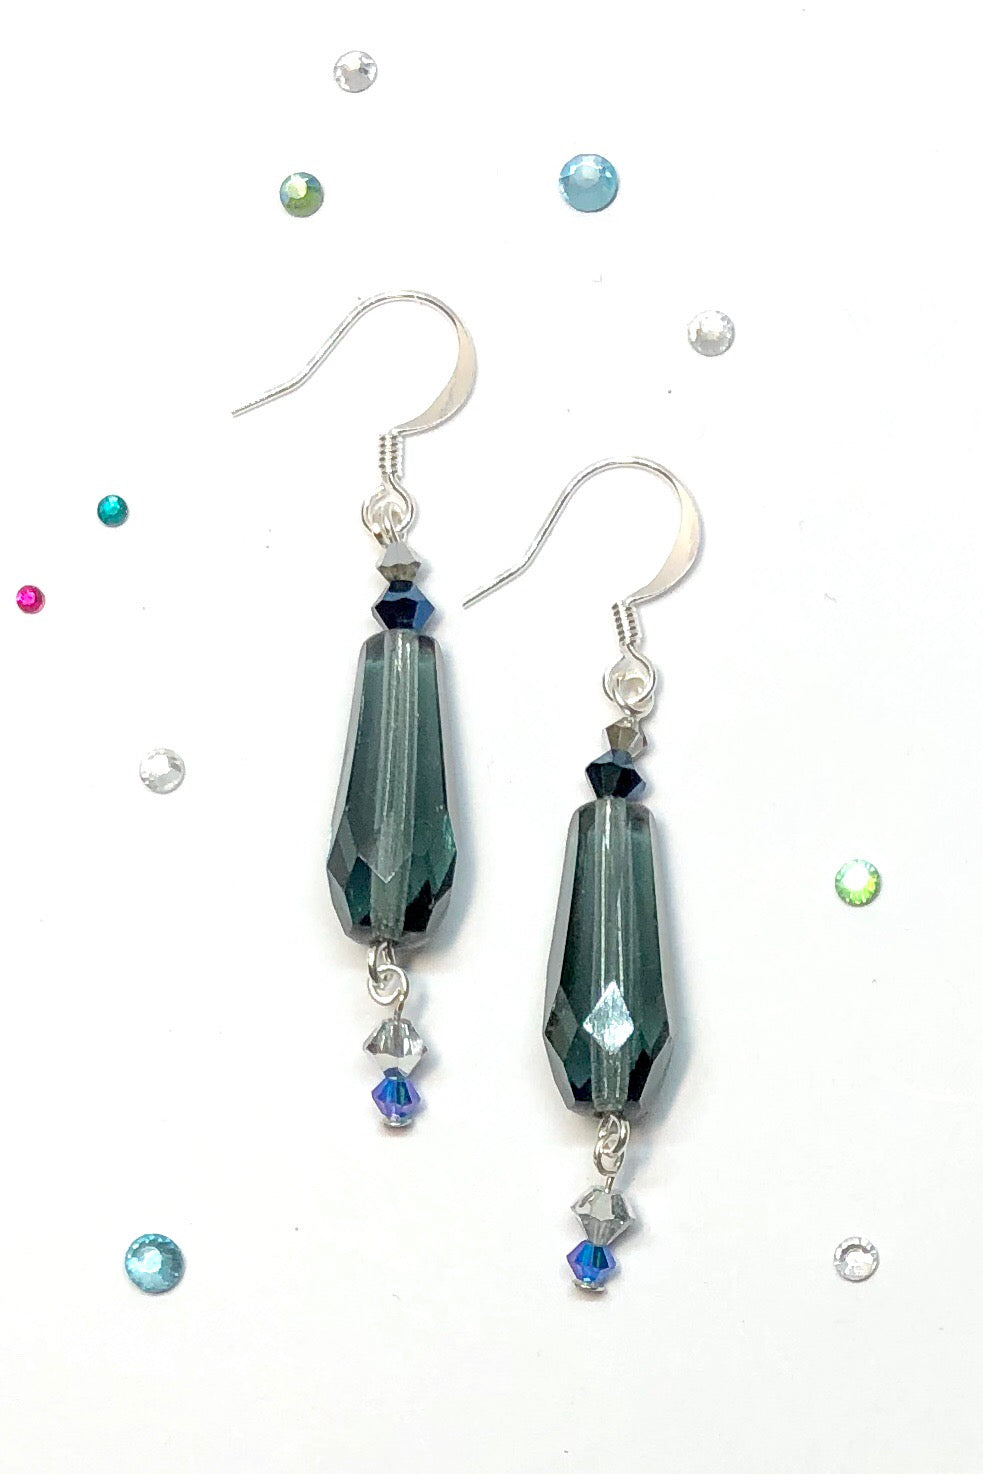 The Earrings Jet Stream Blue are the chic and sharp choice for summer featuring approximately 5.4 cm length, drop style earrings,925 plate silver hook earrings.